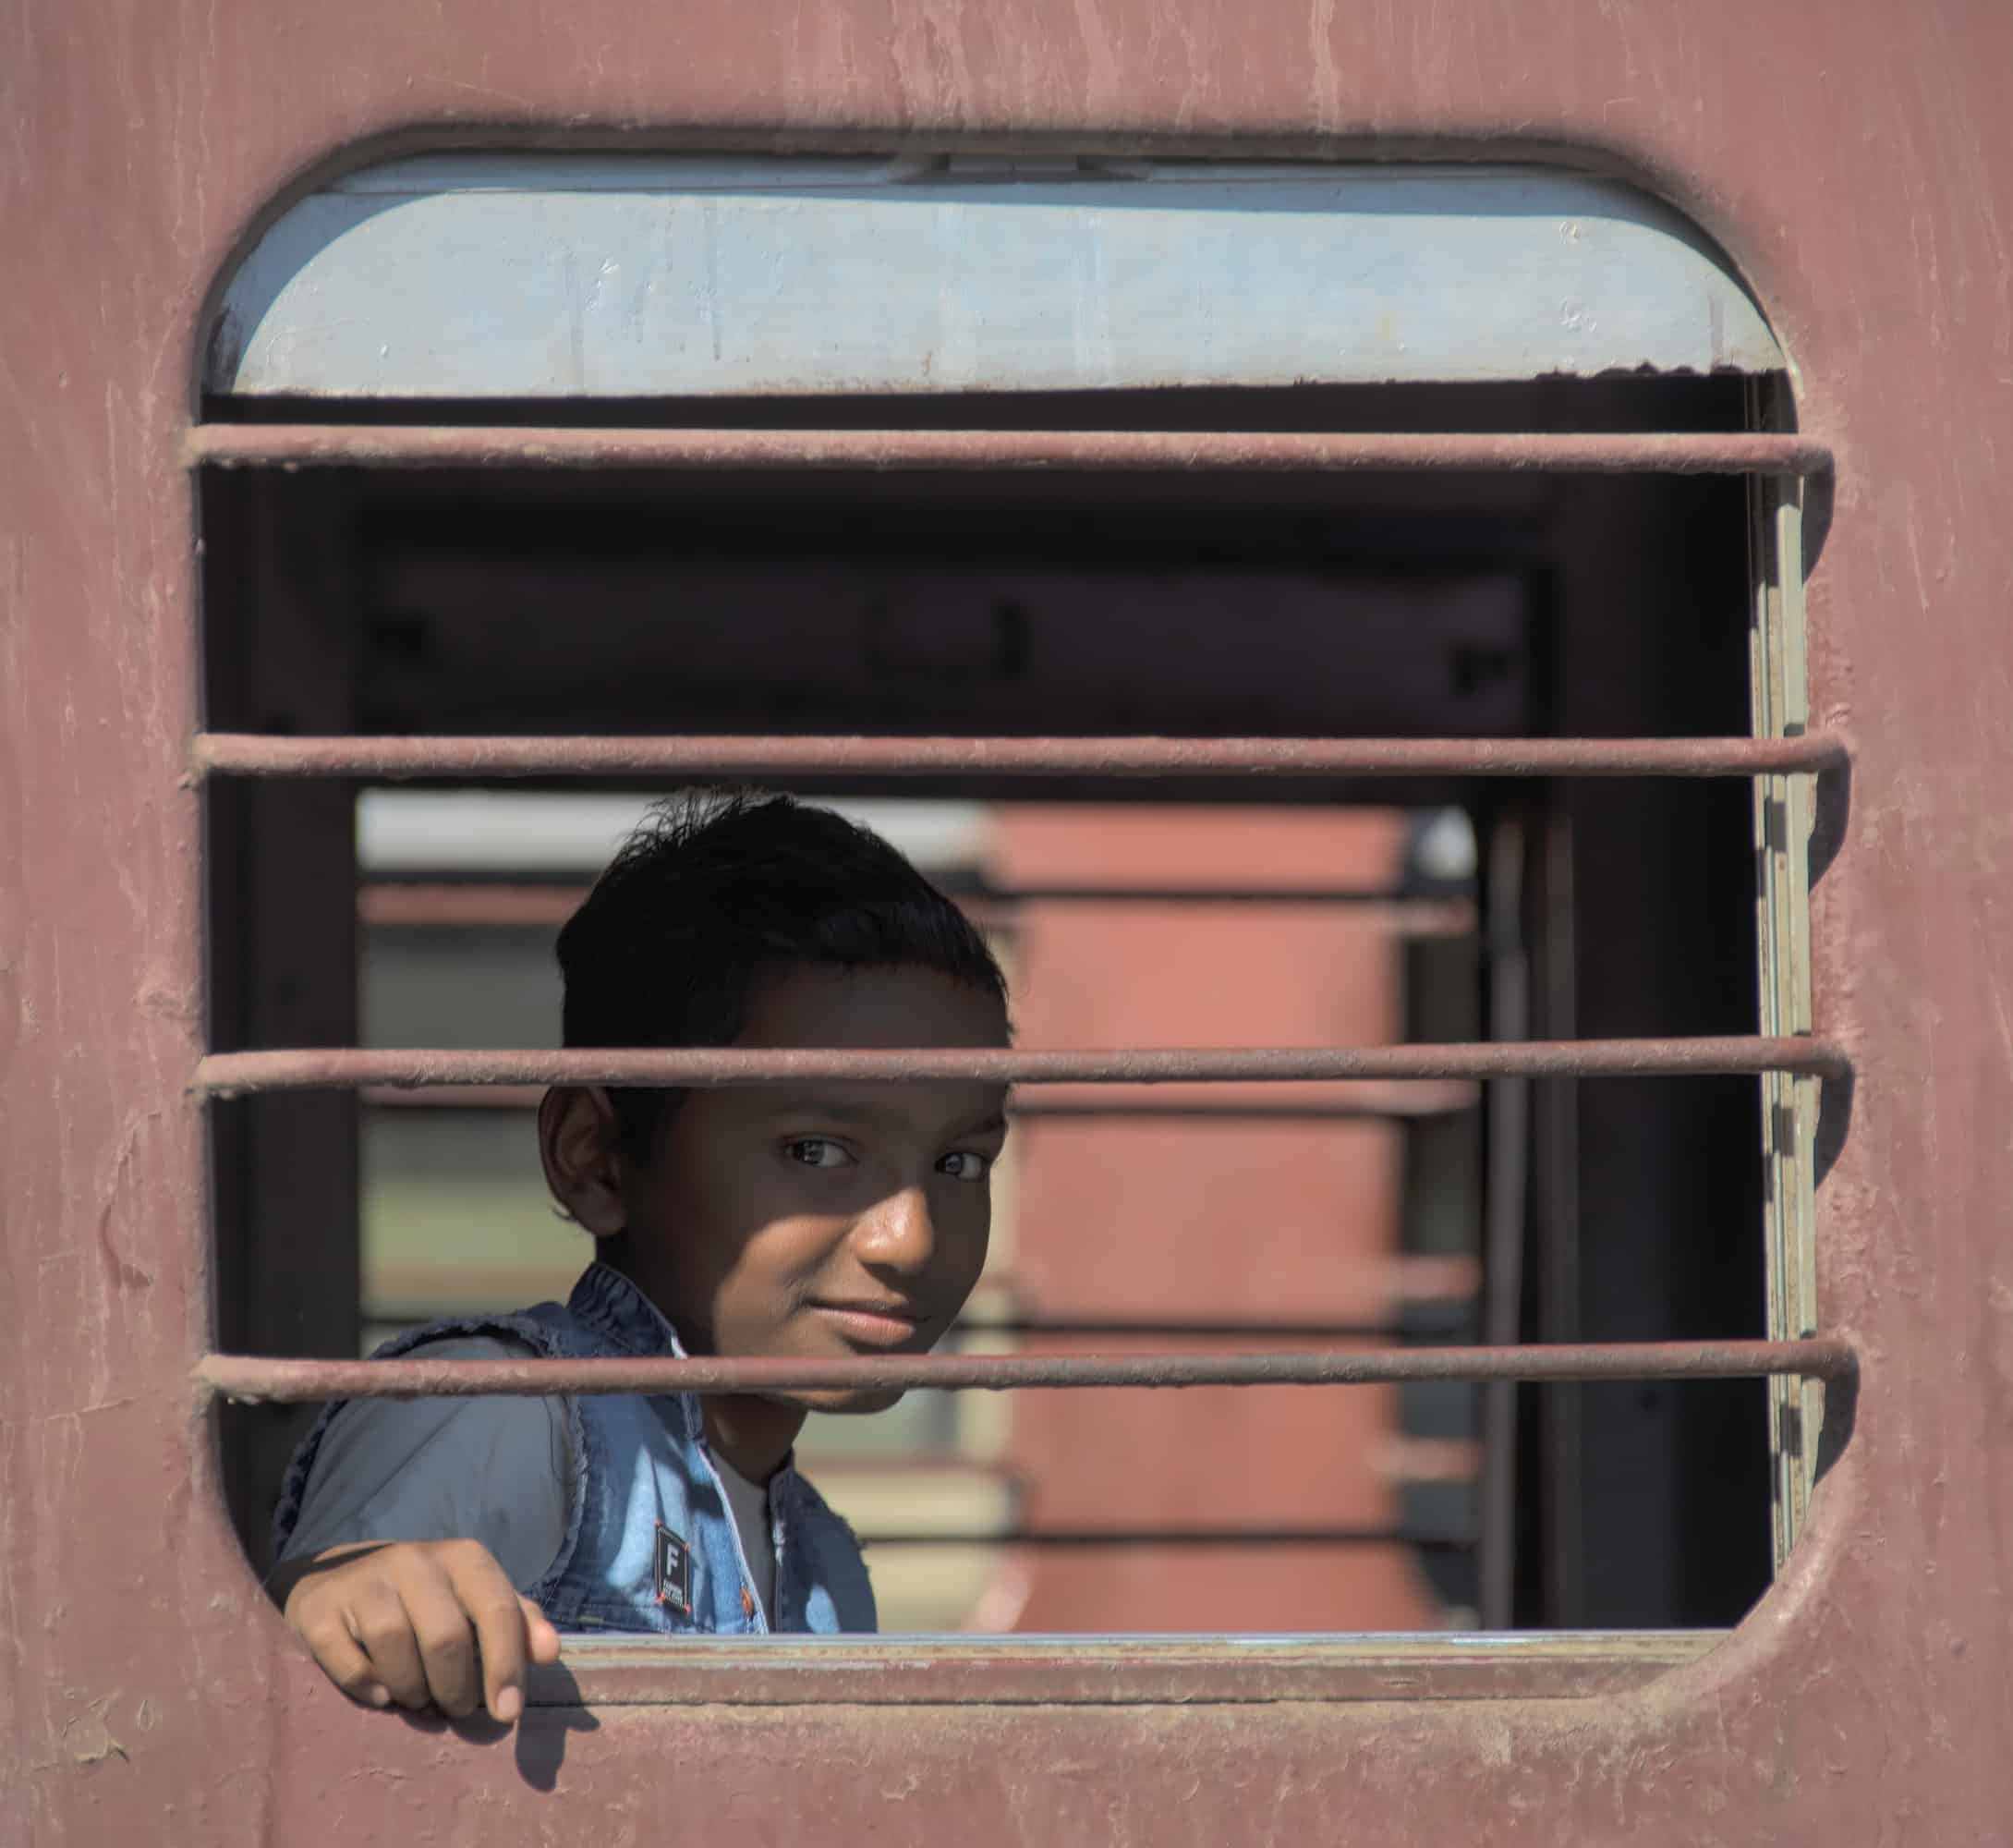 Boy on a train in India looking out of window